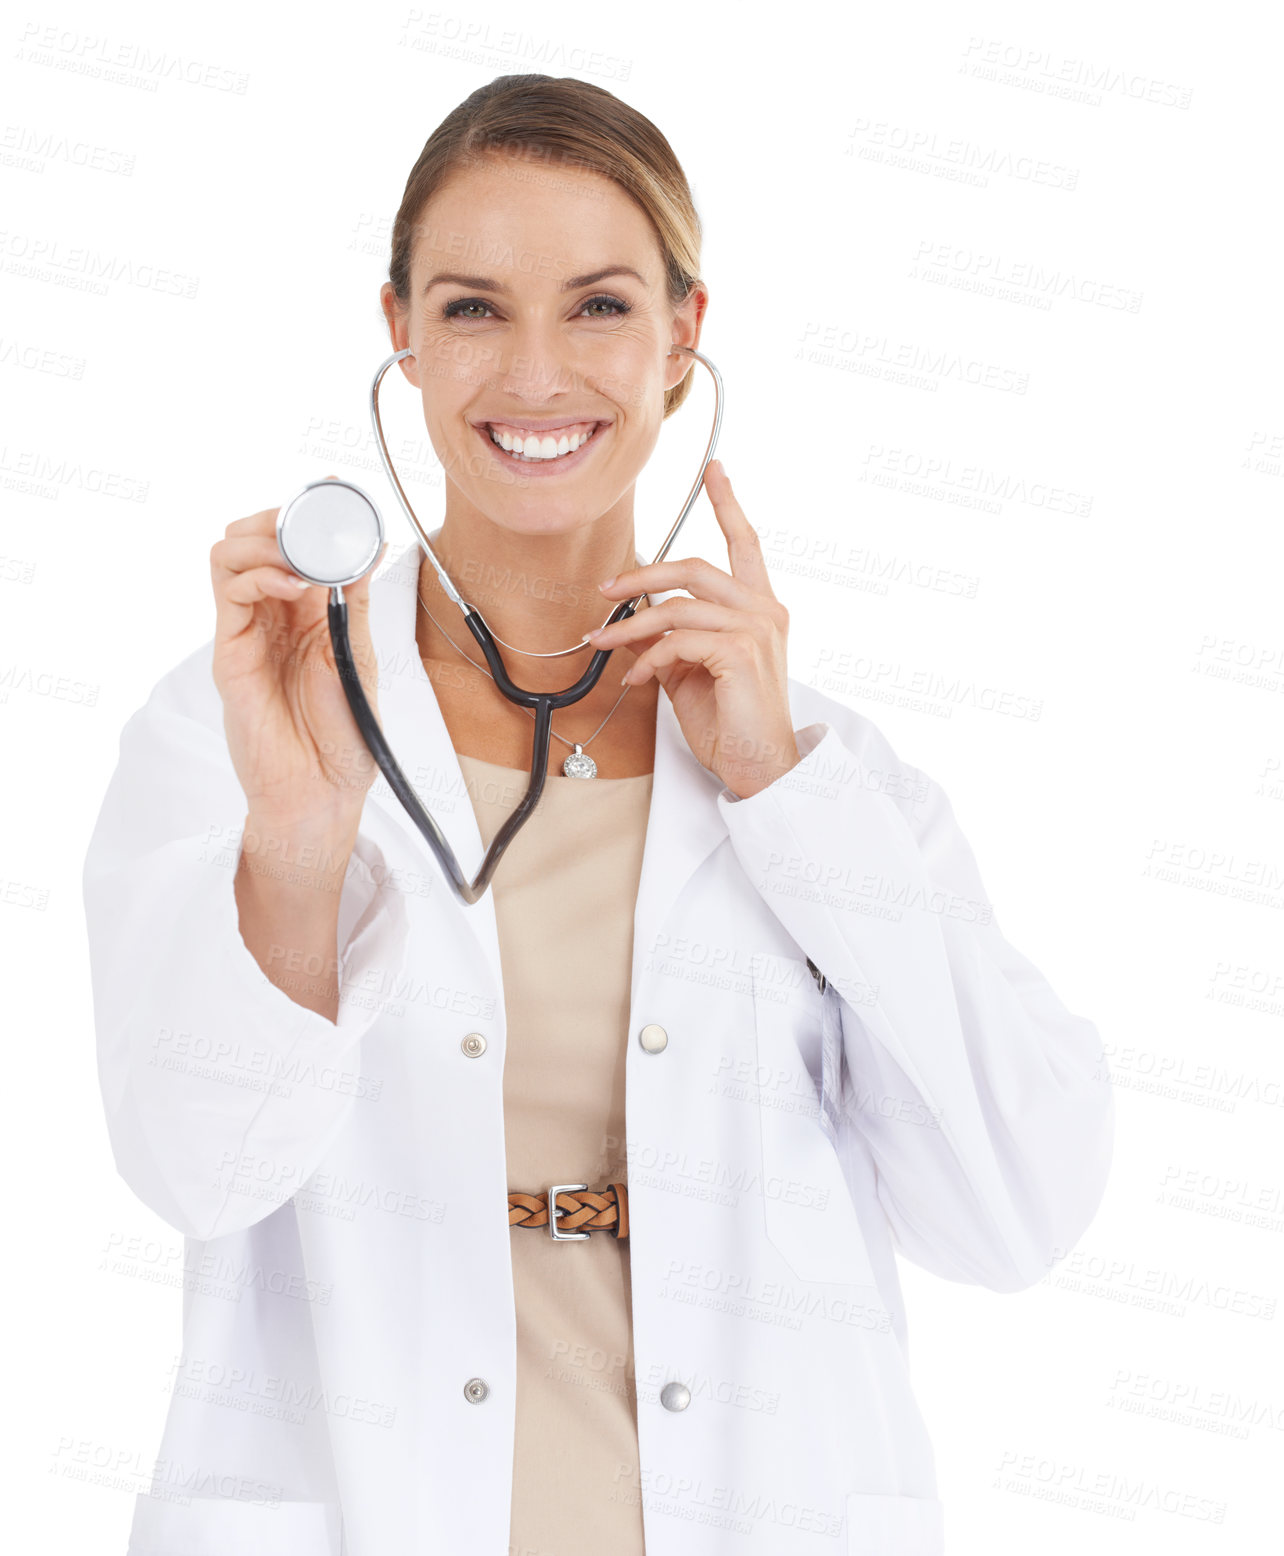 Buy stock photo A beautiful female doctor holding up a stethoscope to the camera